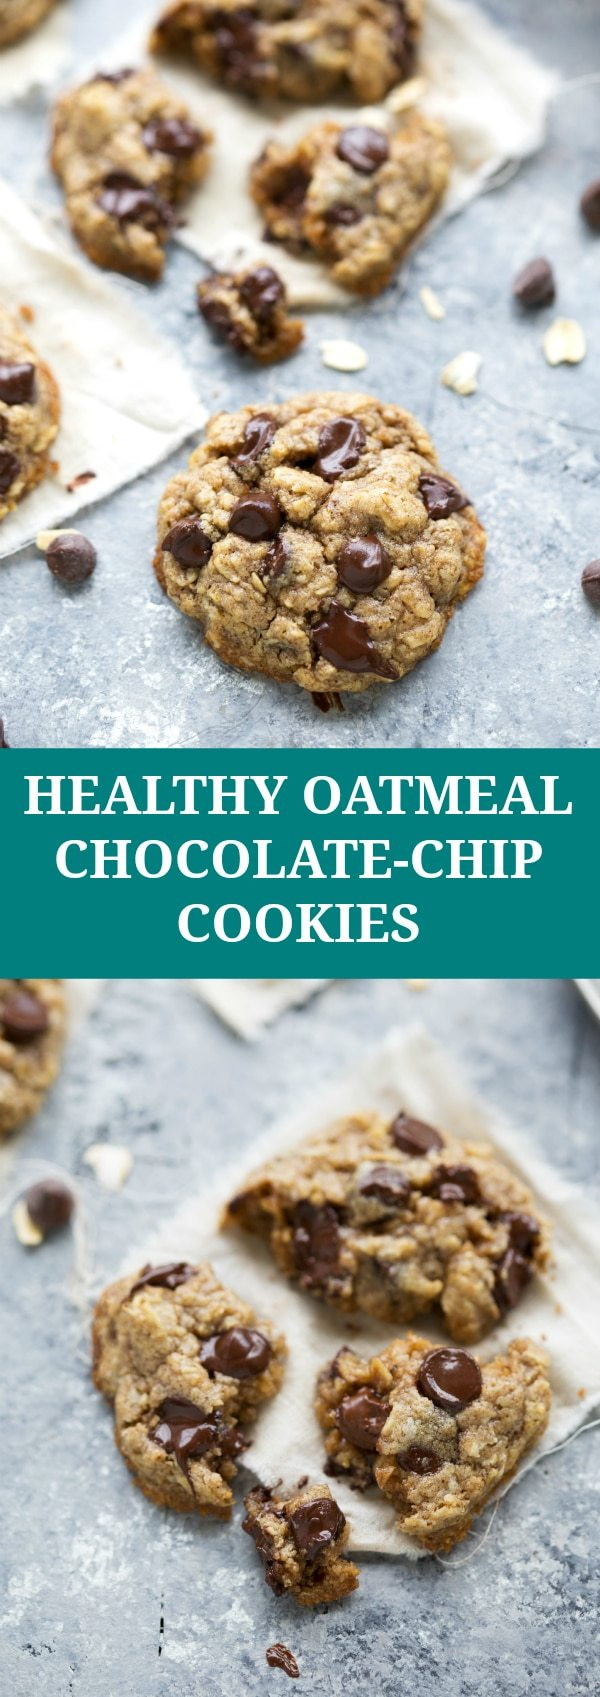 Healthy Oatmeal Chocolate Chip Cookies Recipe  The BEST healthy oatmeal chocolate chip cookies Chelsea